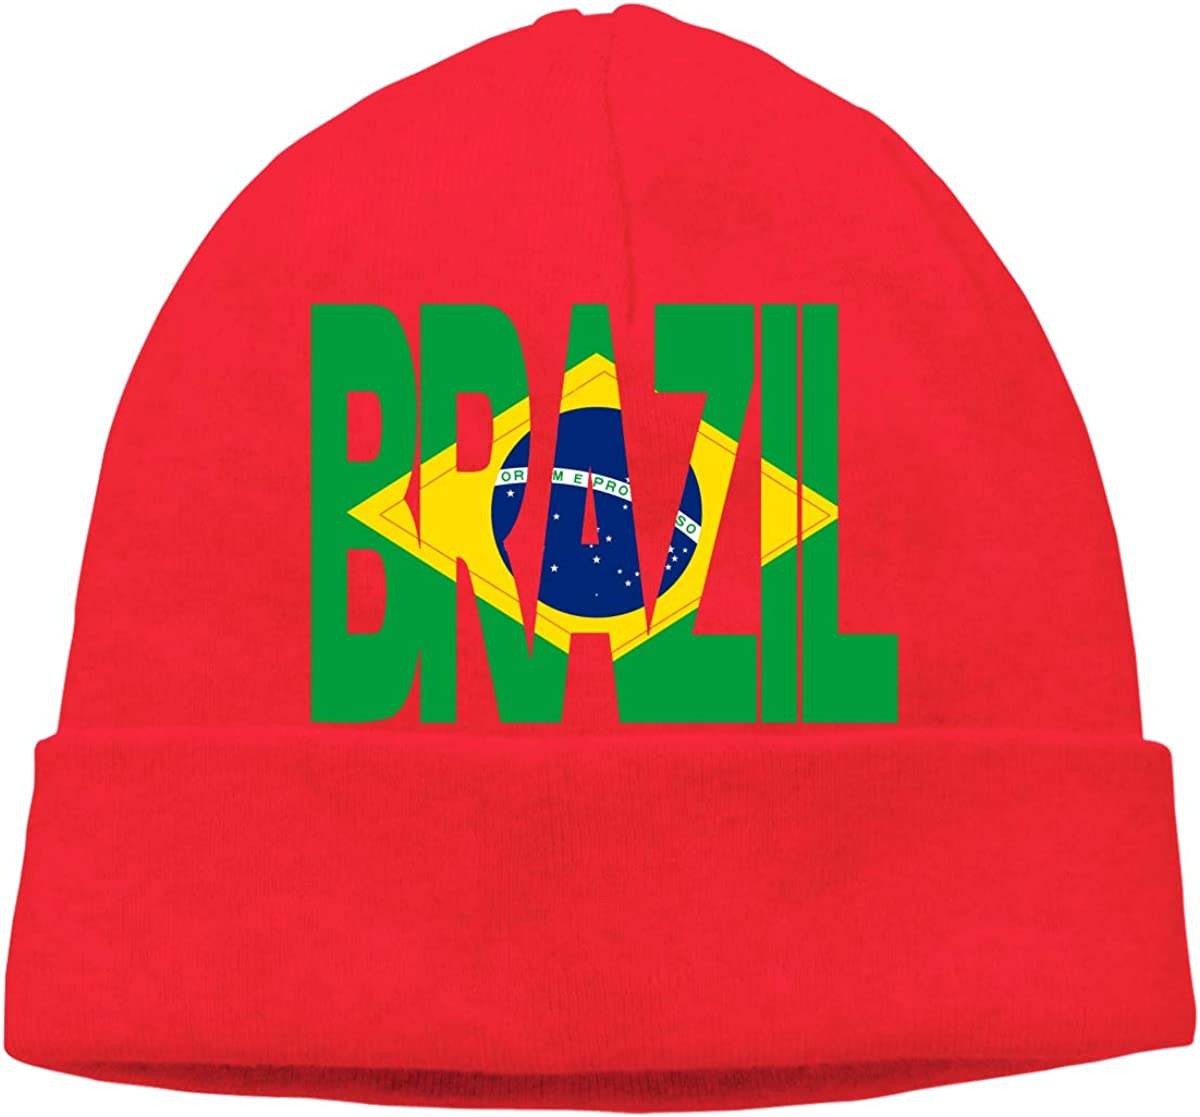 COLLJL8 Men /& Women Brazil Text with Map Outdoor Fashion Beanies Hat Soft Winter Skull Caps